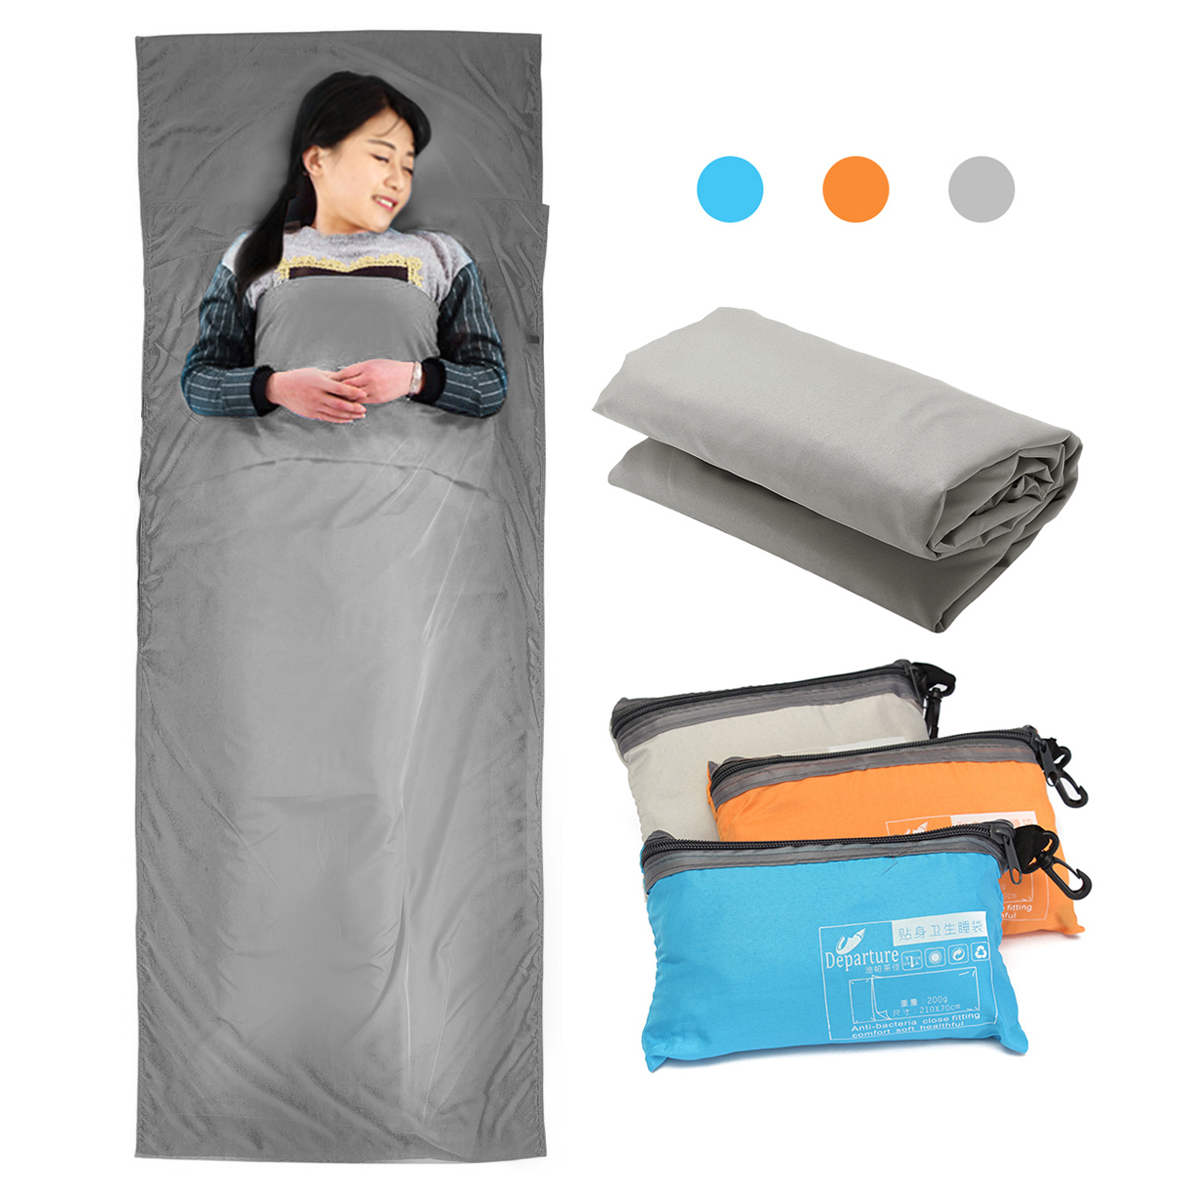 KingCamp Cotton Sleeping Bag Liner Hotel Envelope Sleeping Sheet Compact Portable Lightweight for Traveling Hostels Camping /& Backpacking